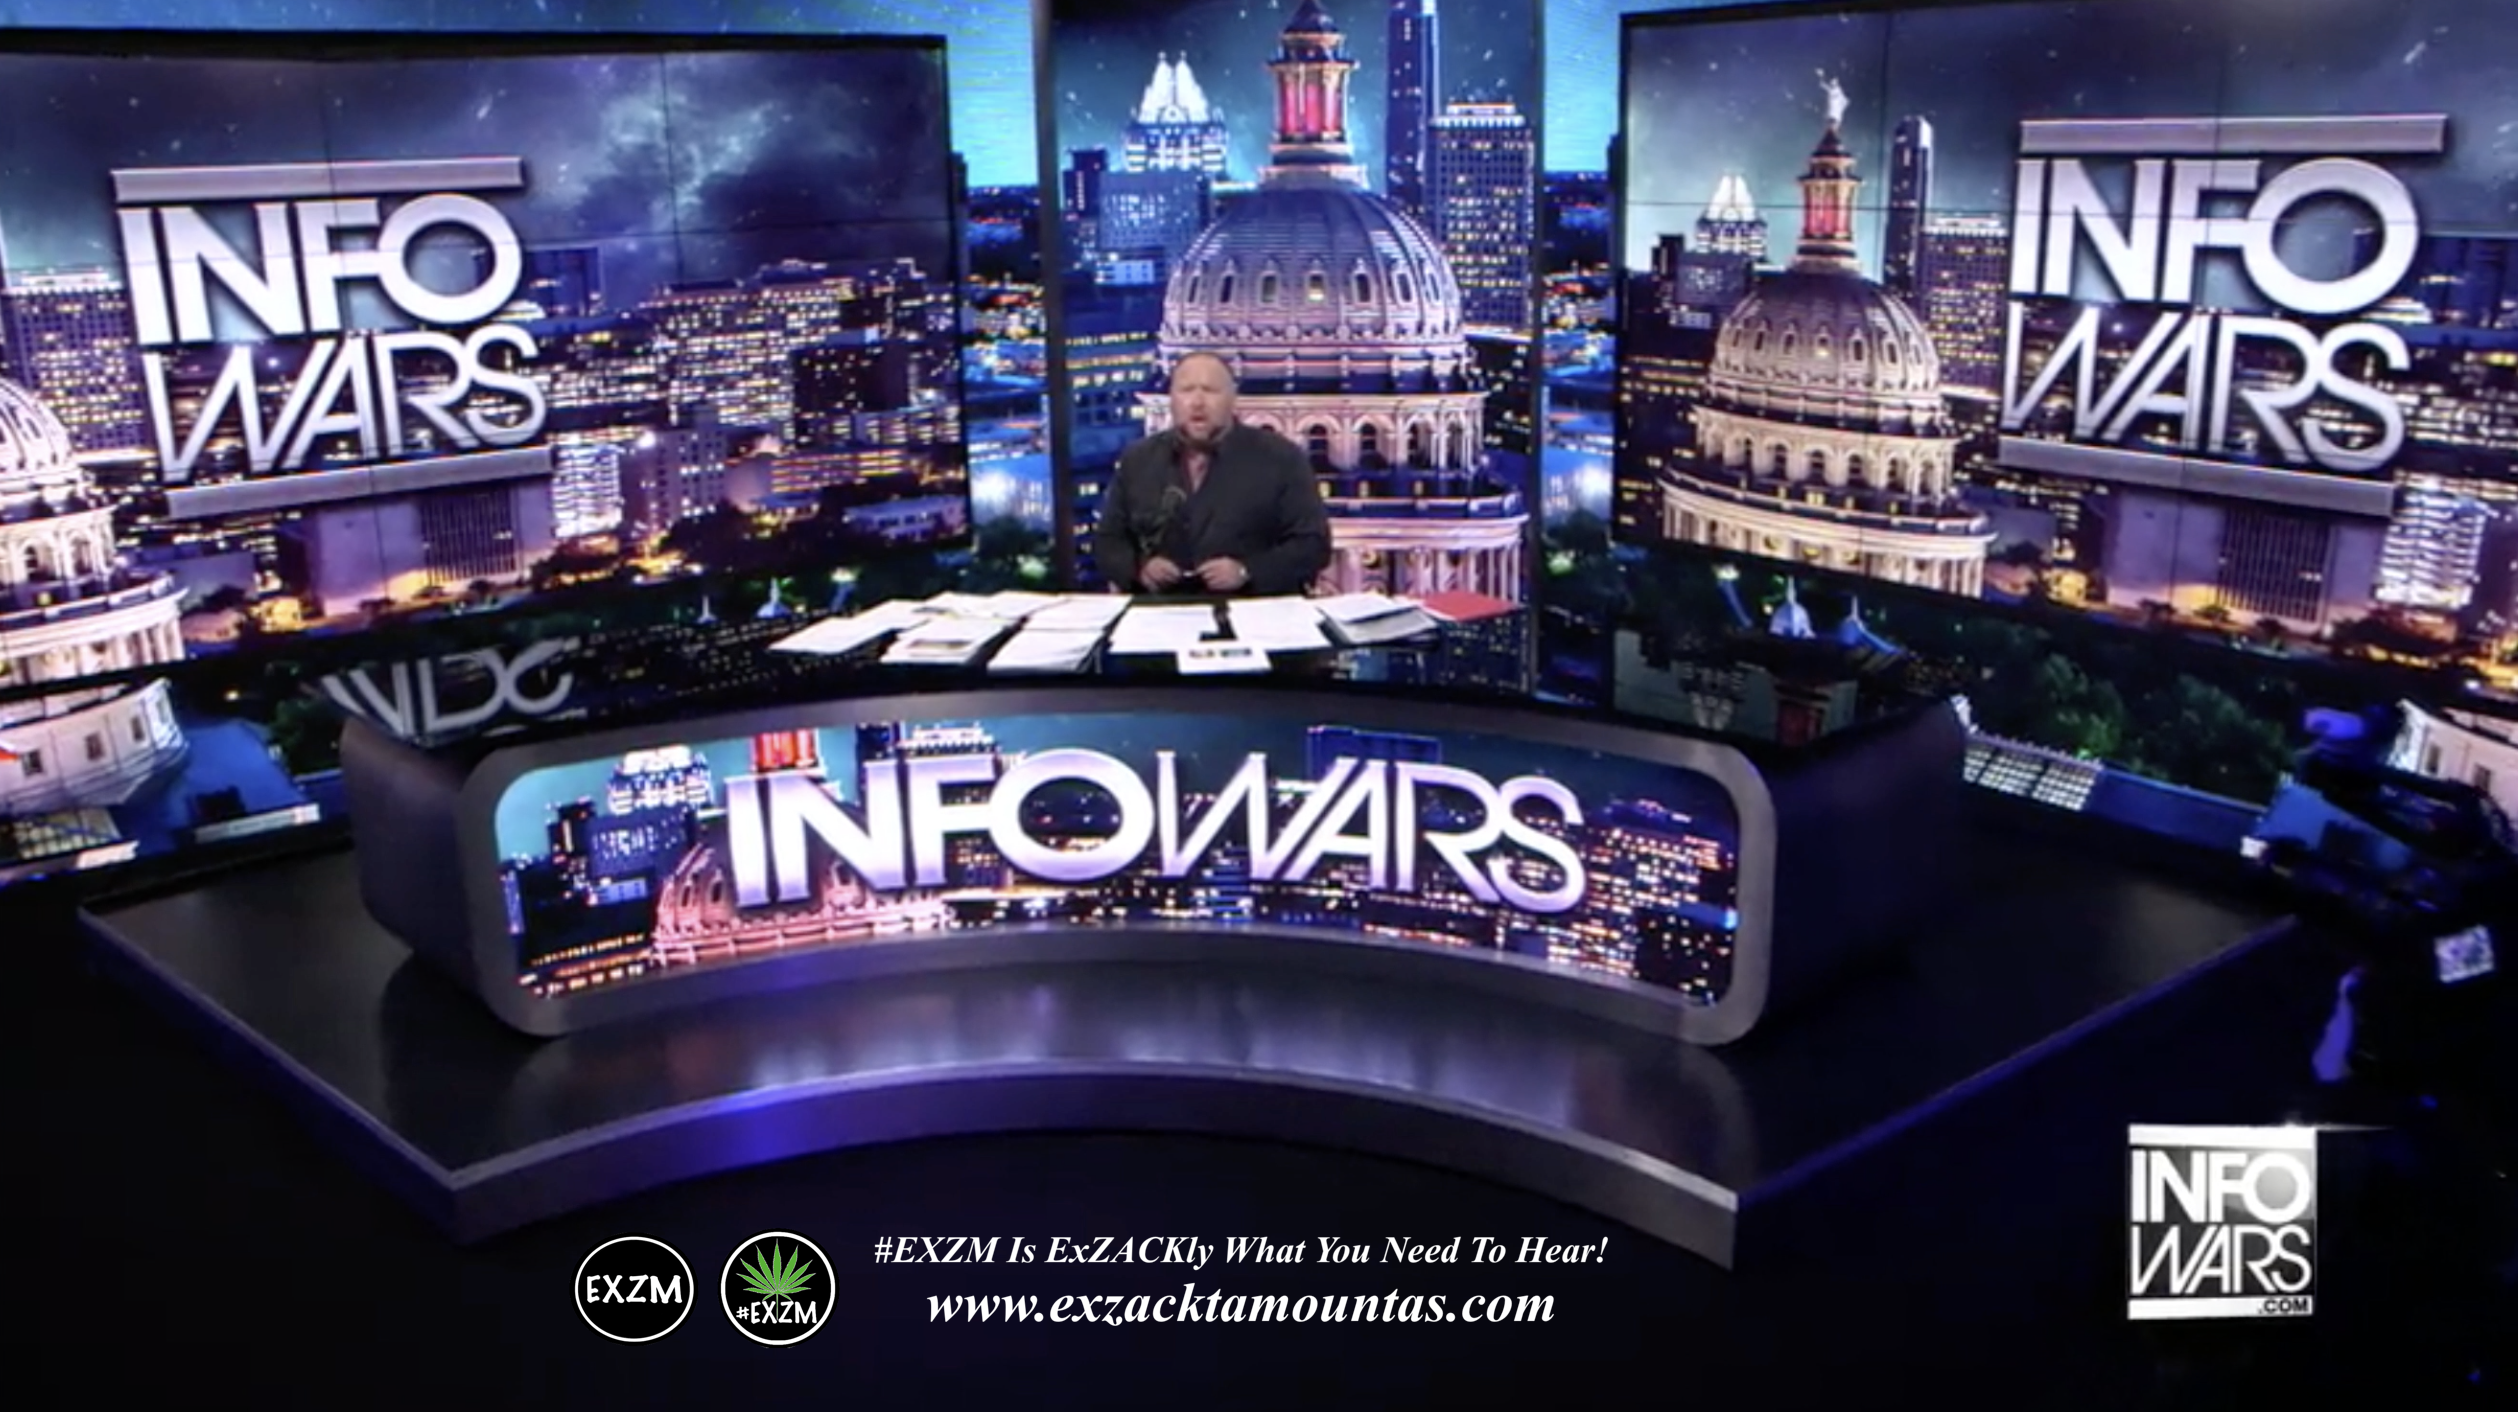 Alex Jones Live Infowars Studio EXZM Zack Mount February 25th 2021 copy